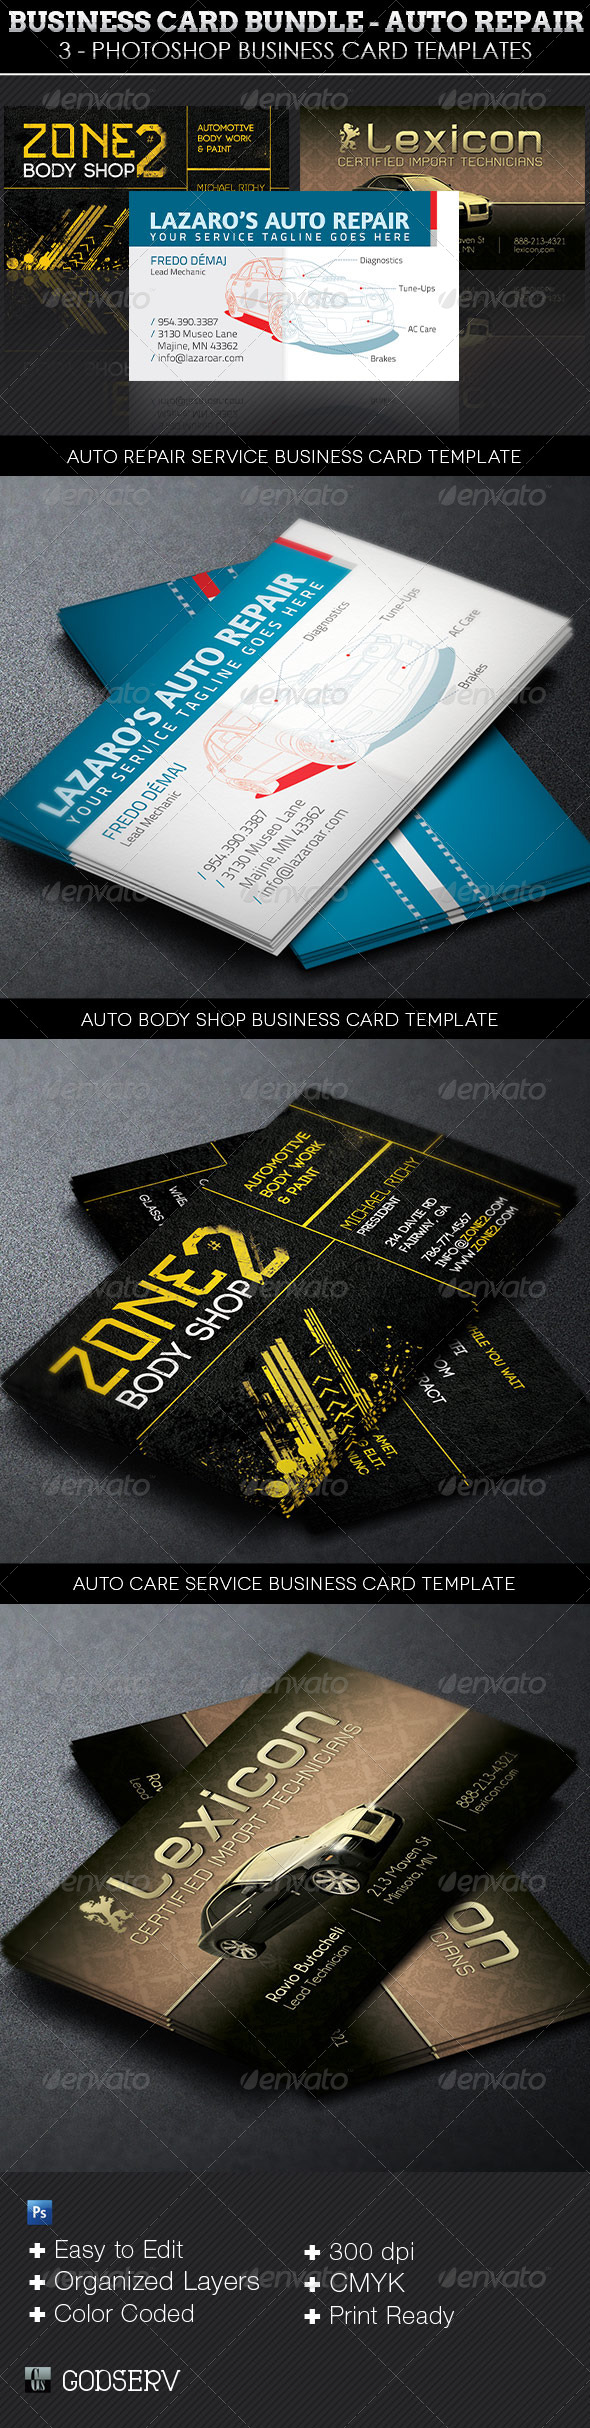 GraphicRiver Auto Repair Business Card Template Bundle 7333677